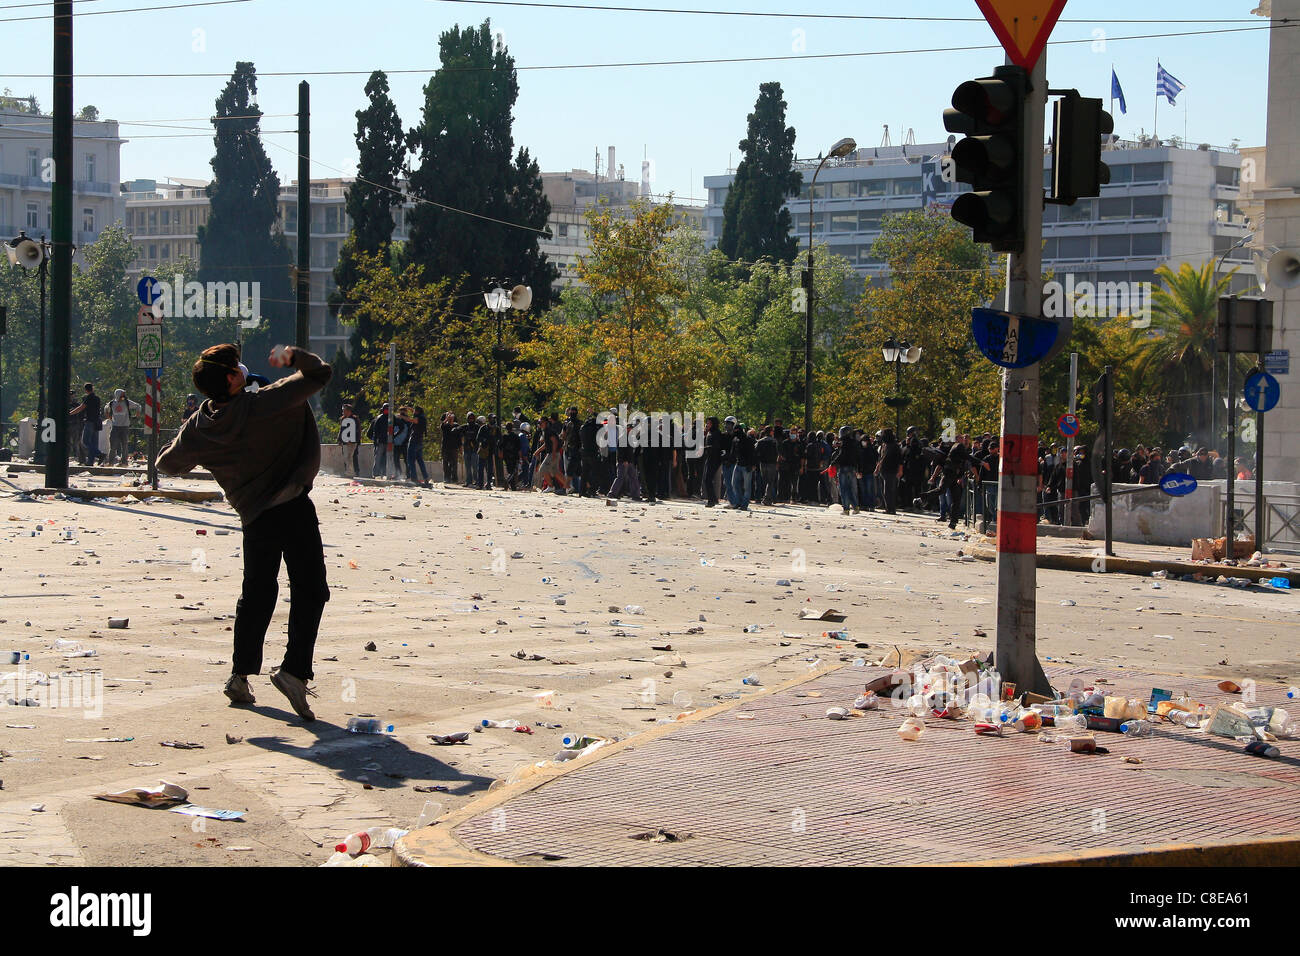 GREECE, ATHENS, SYNTAGMA SQUARE, 20/10/2011. Protests against Greek government's economic policy. Protester - Stock Image